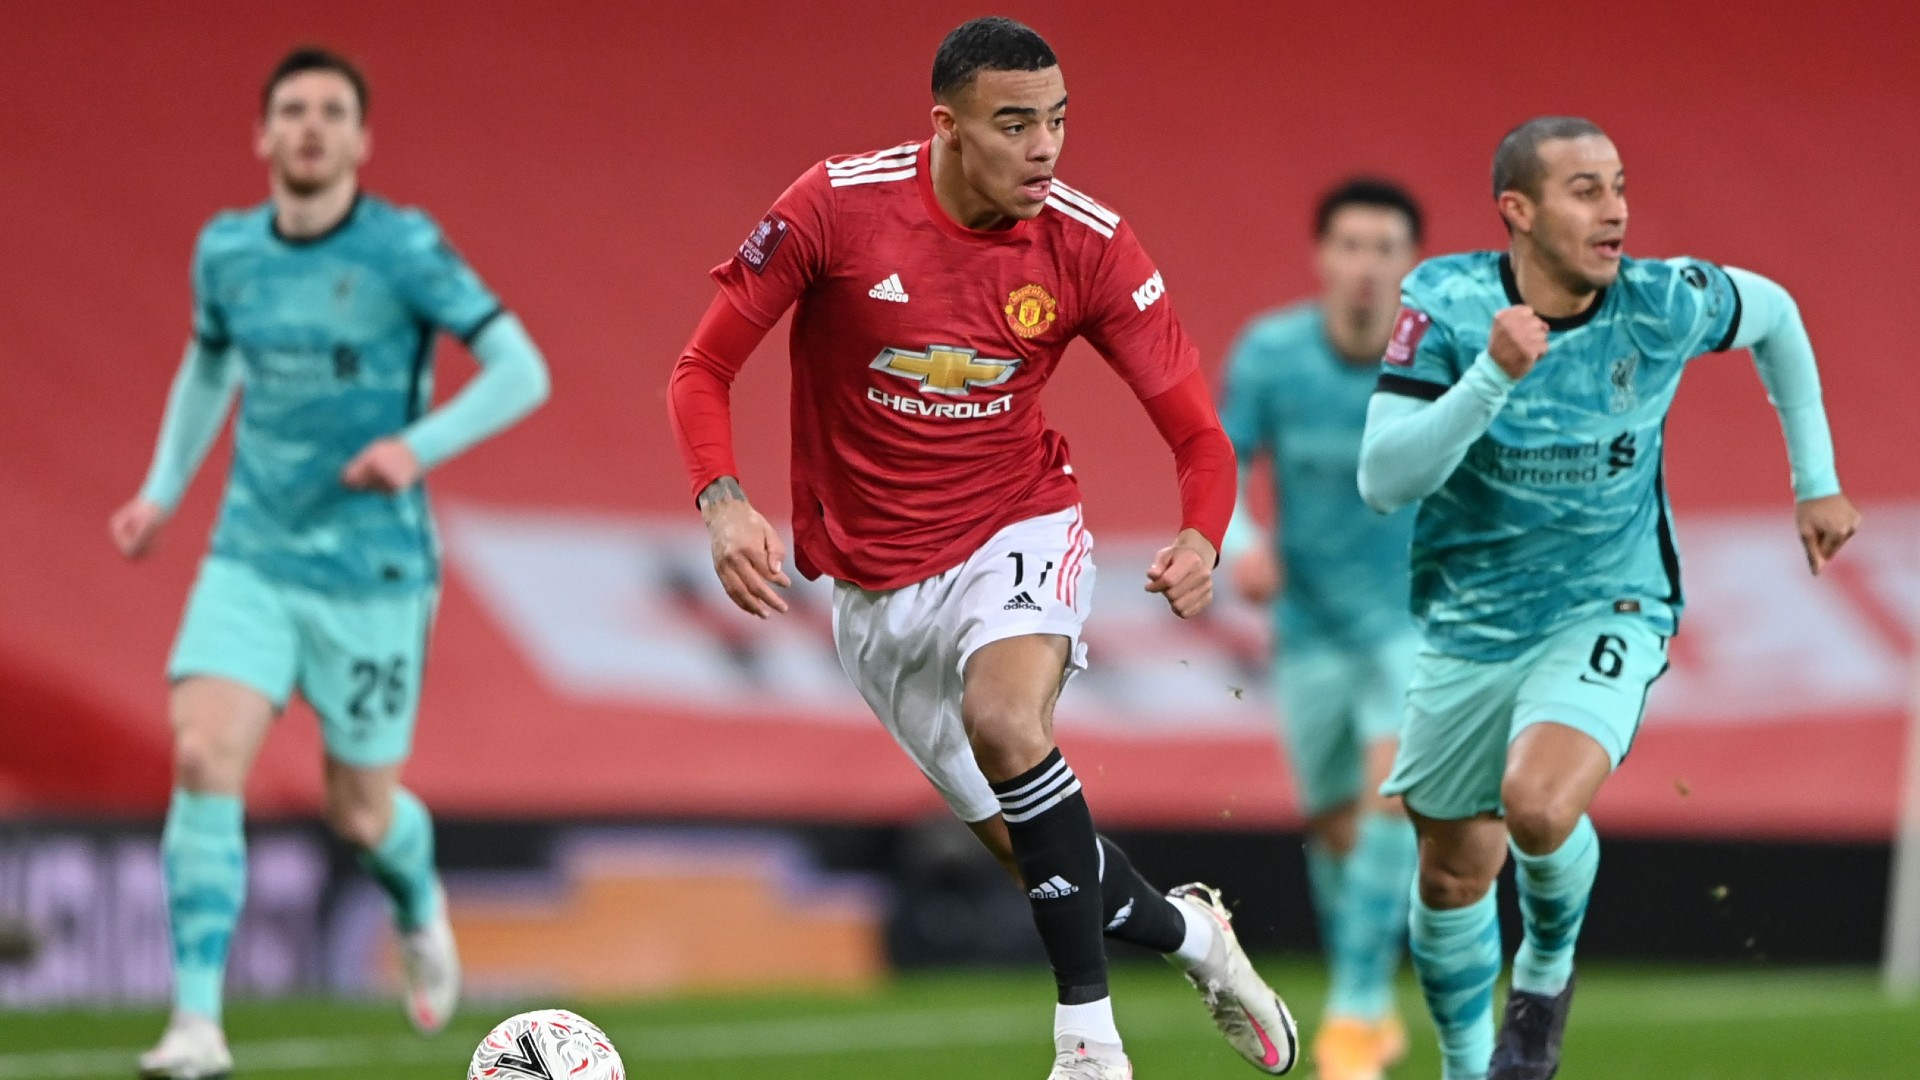 Greenwood matches Rooney mark as Manchester United continue to torment Liverpool in FA Cup